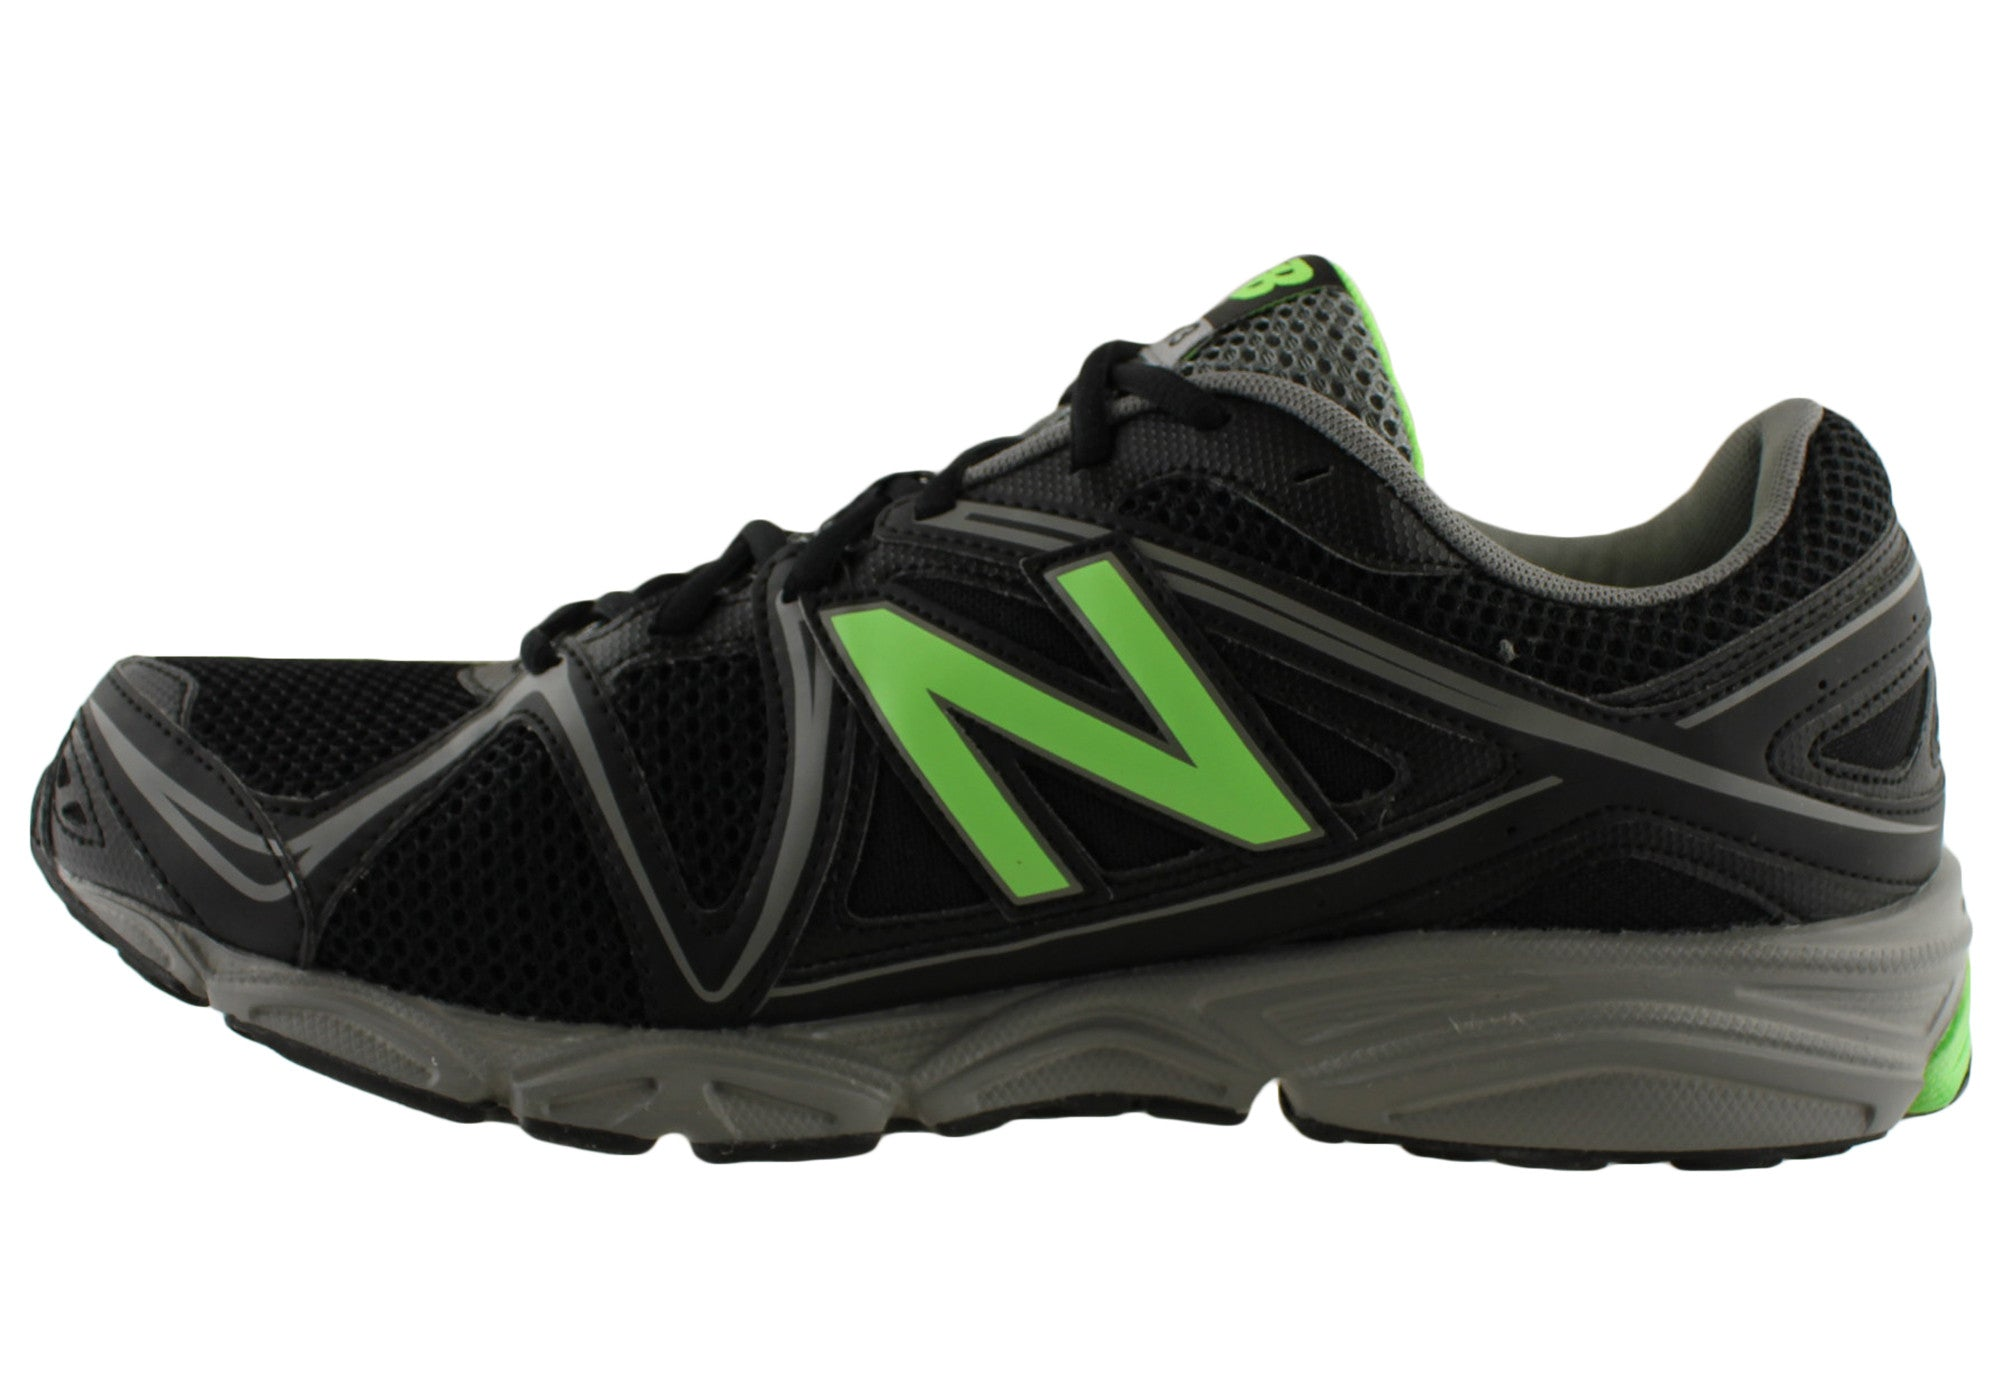 New Balance M580 Mens Running/Sports Shoes